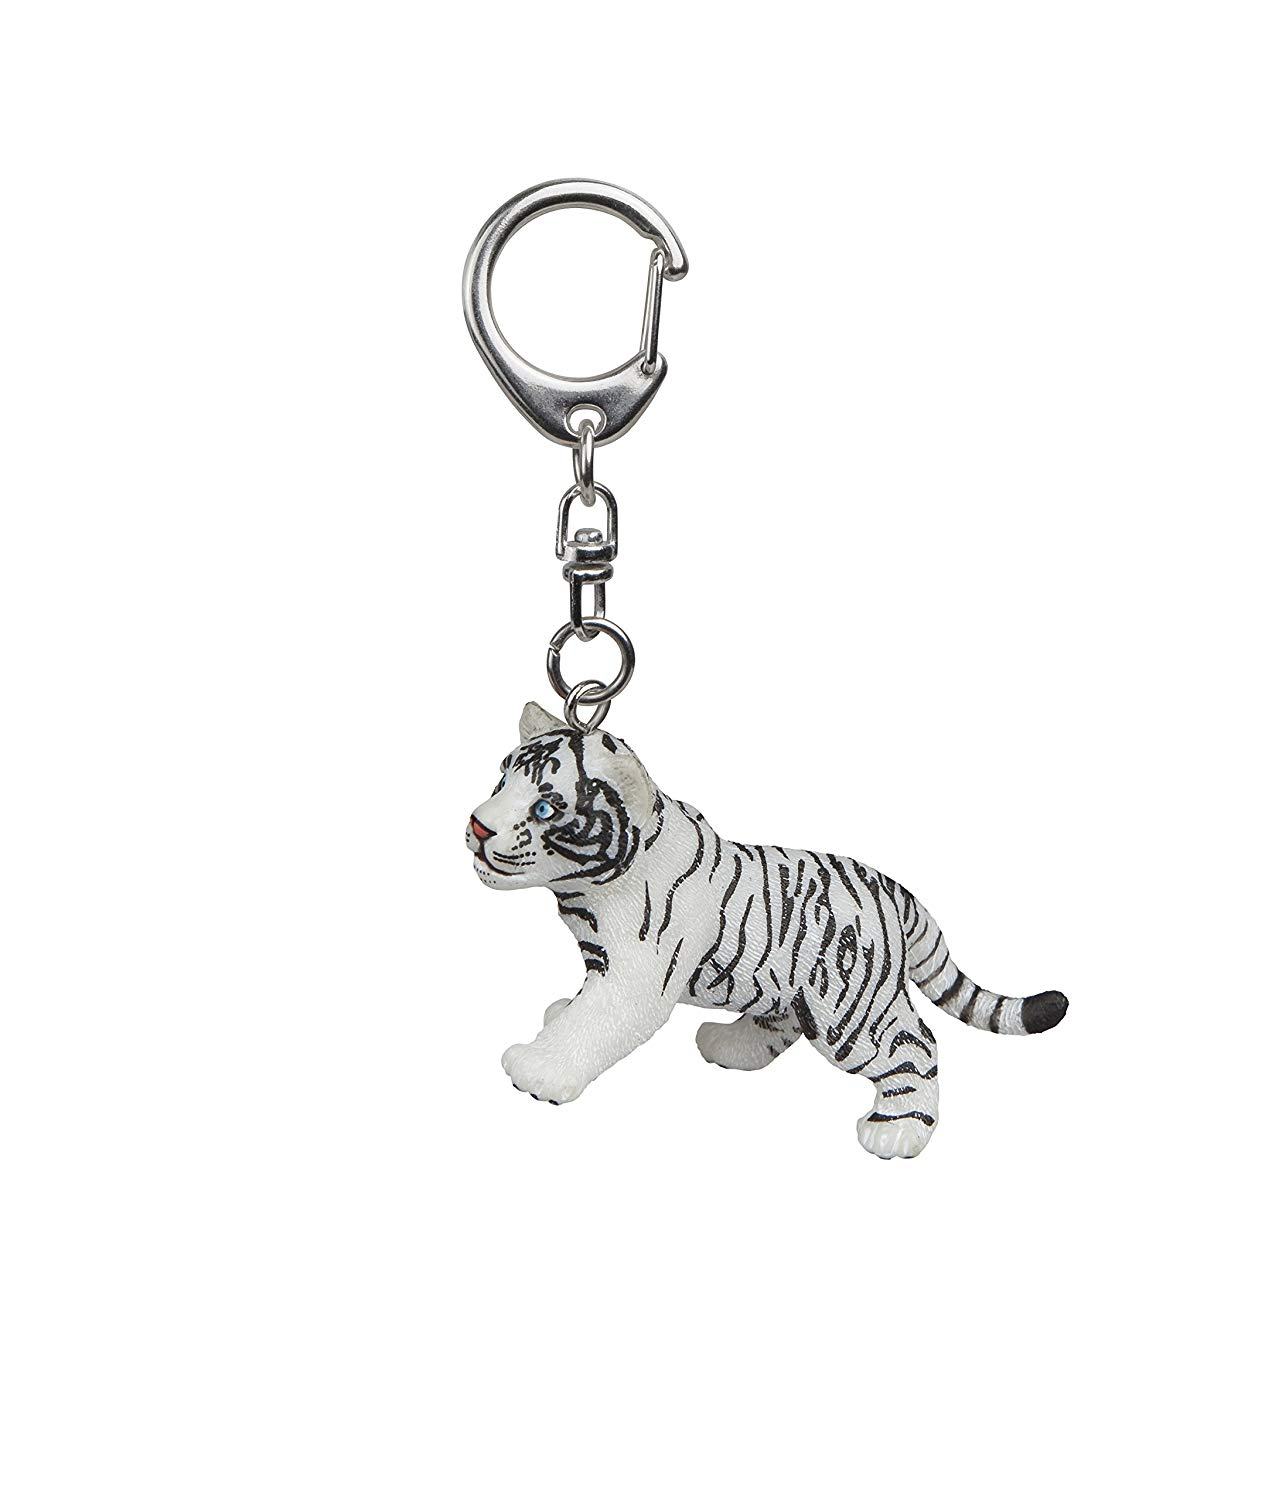 "Papo 02210 ""Tiger Cub Key Ring, White"